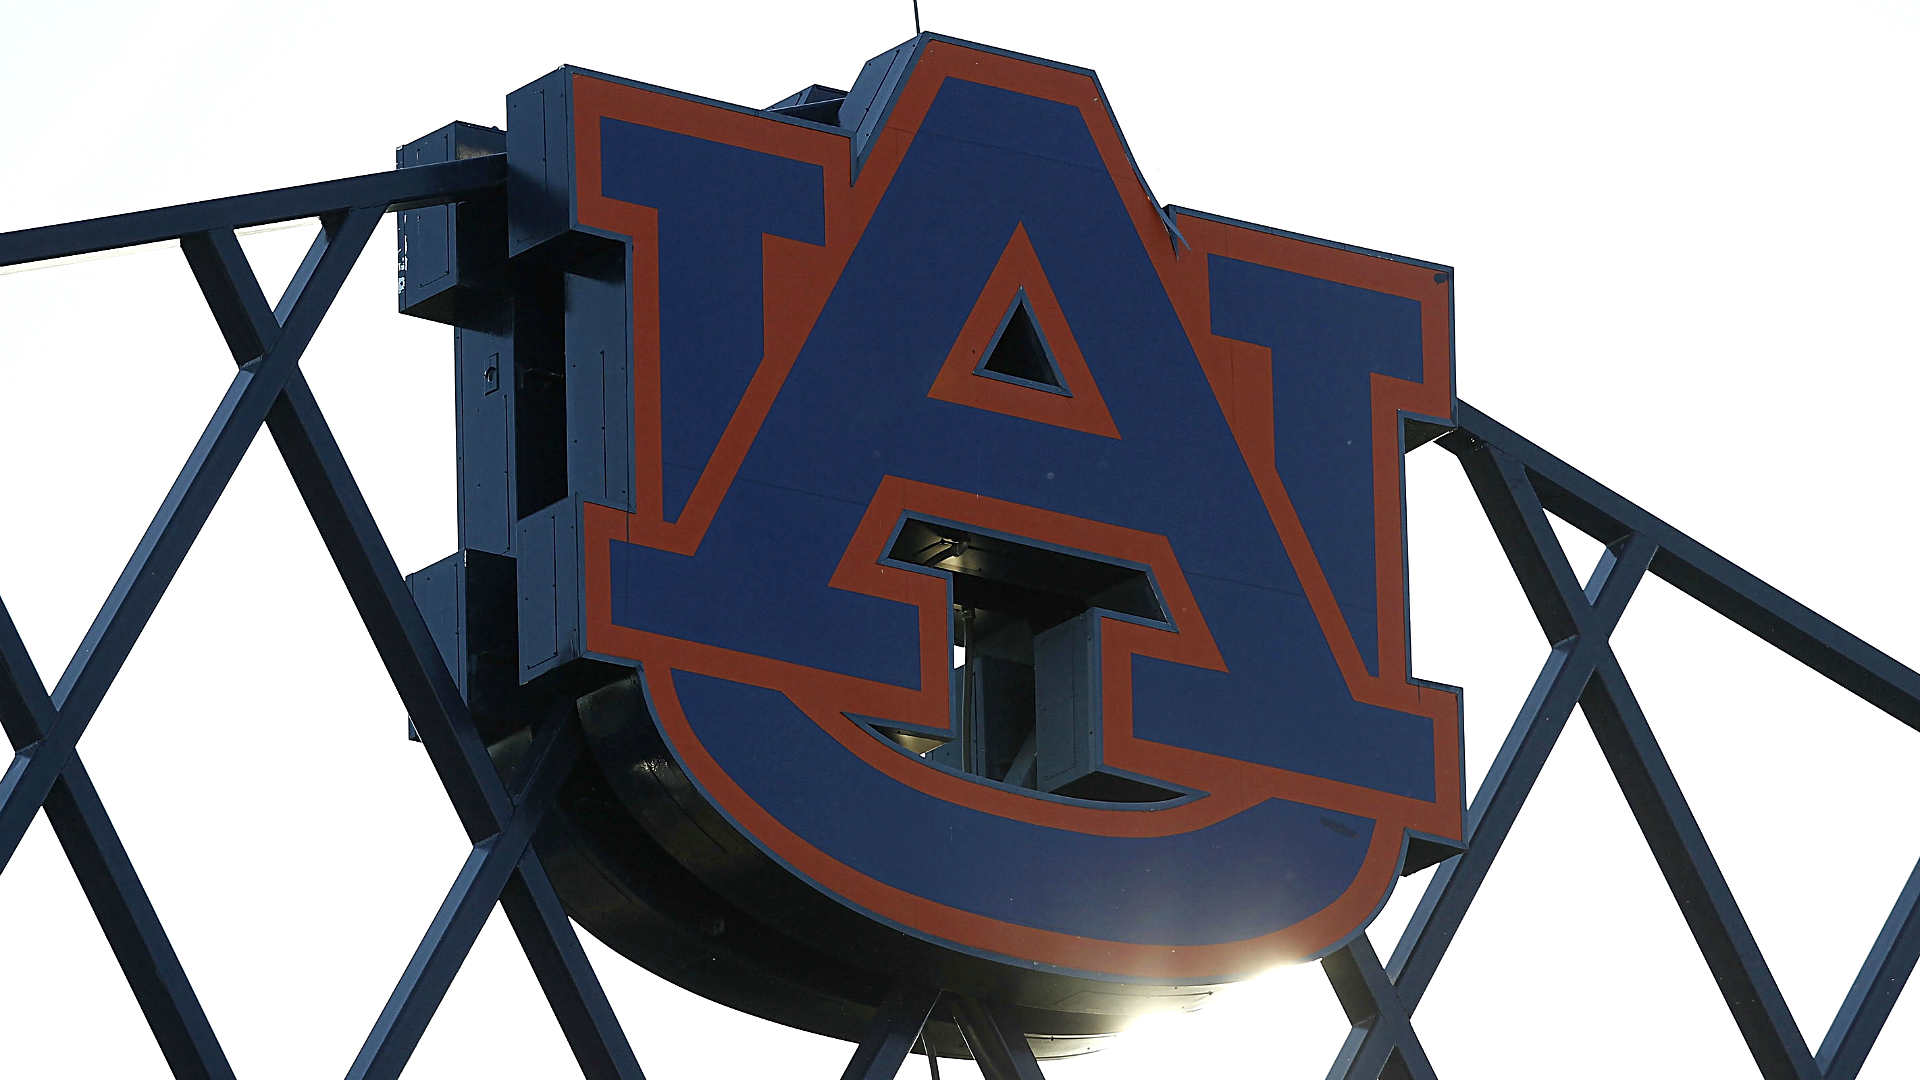 Auburn's Jay Jacobs to step down as athletics director